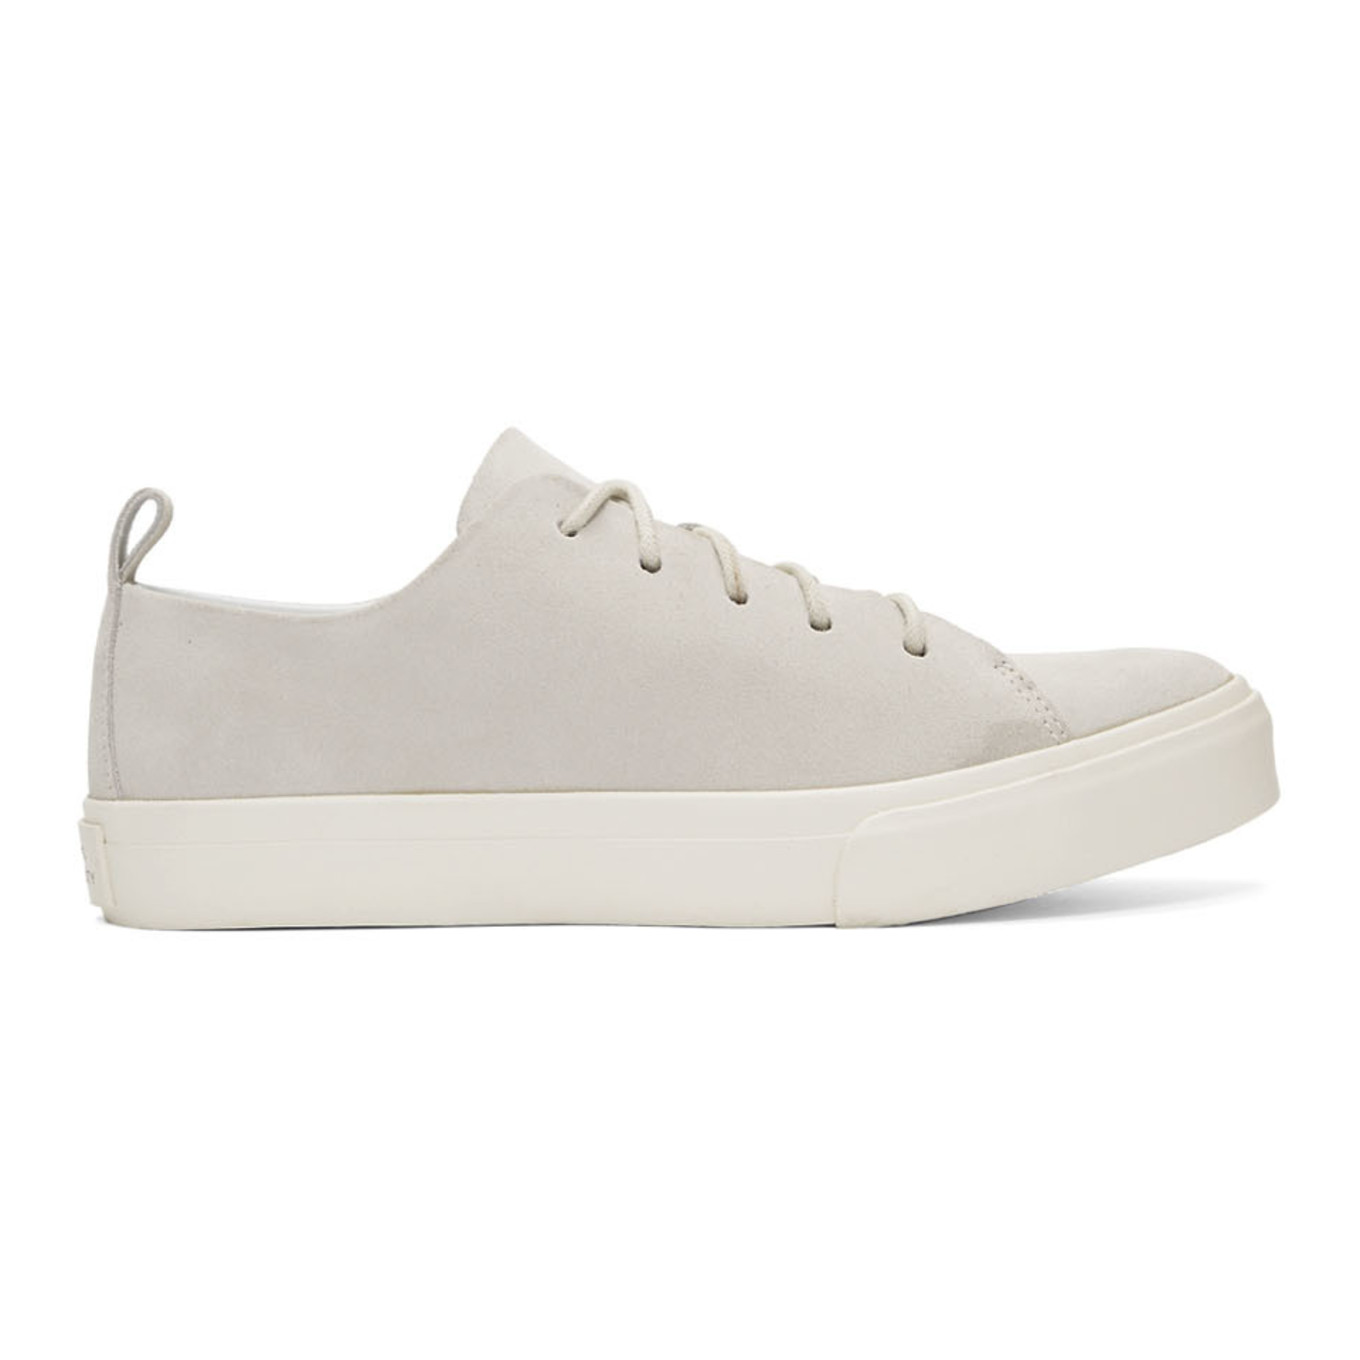 White Suede Mike Low Sneakers by Saturdays Nyc